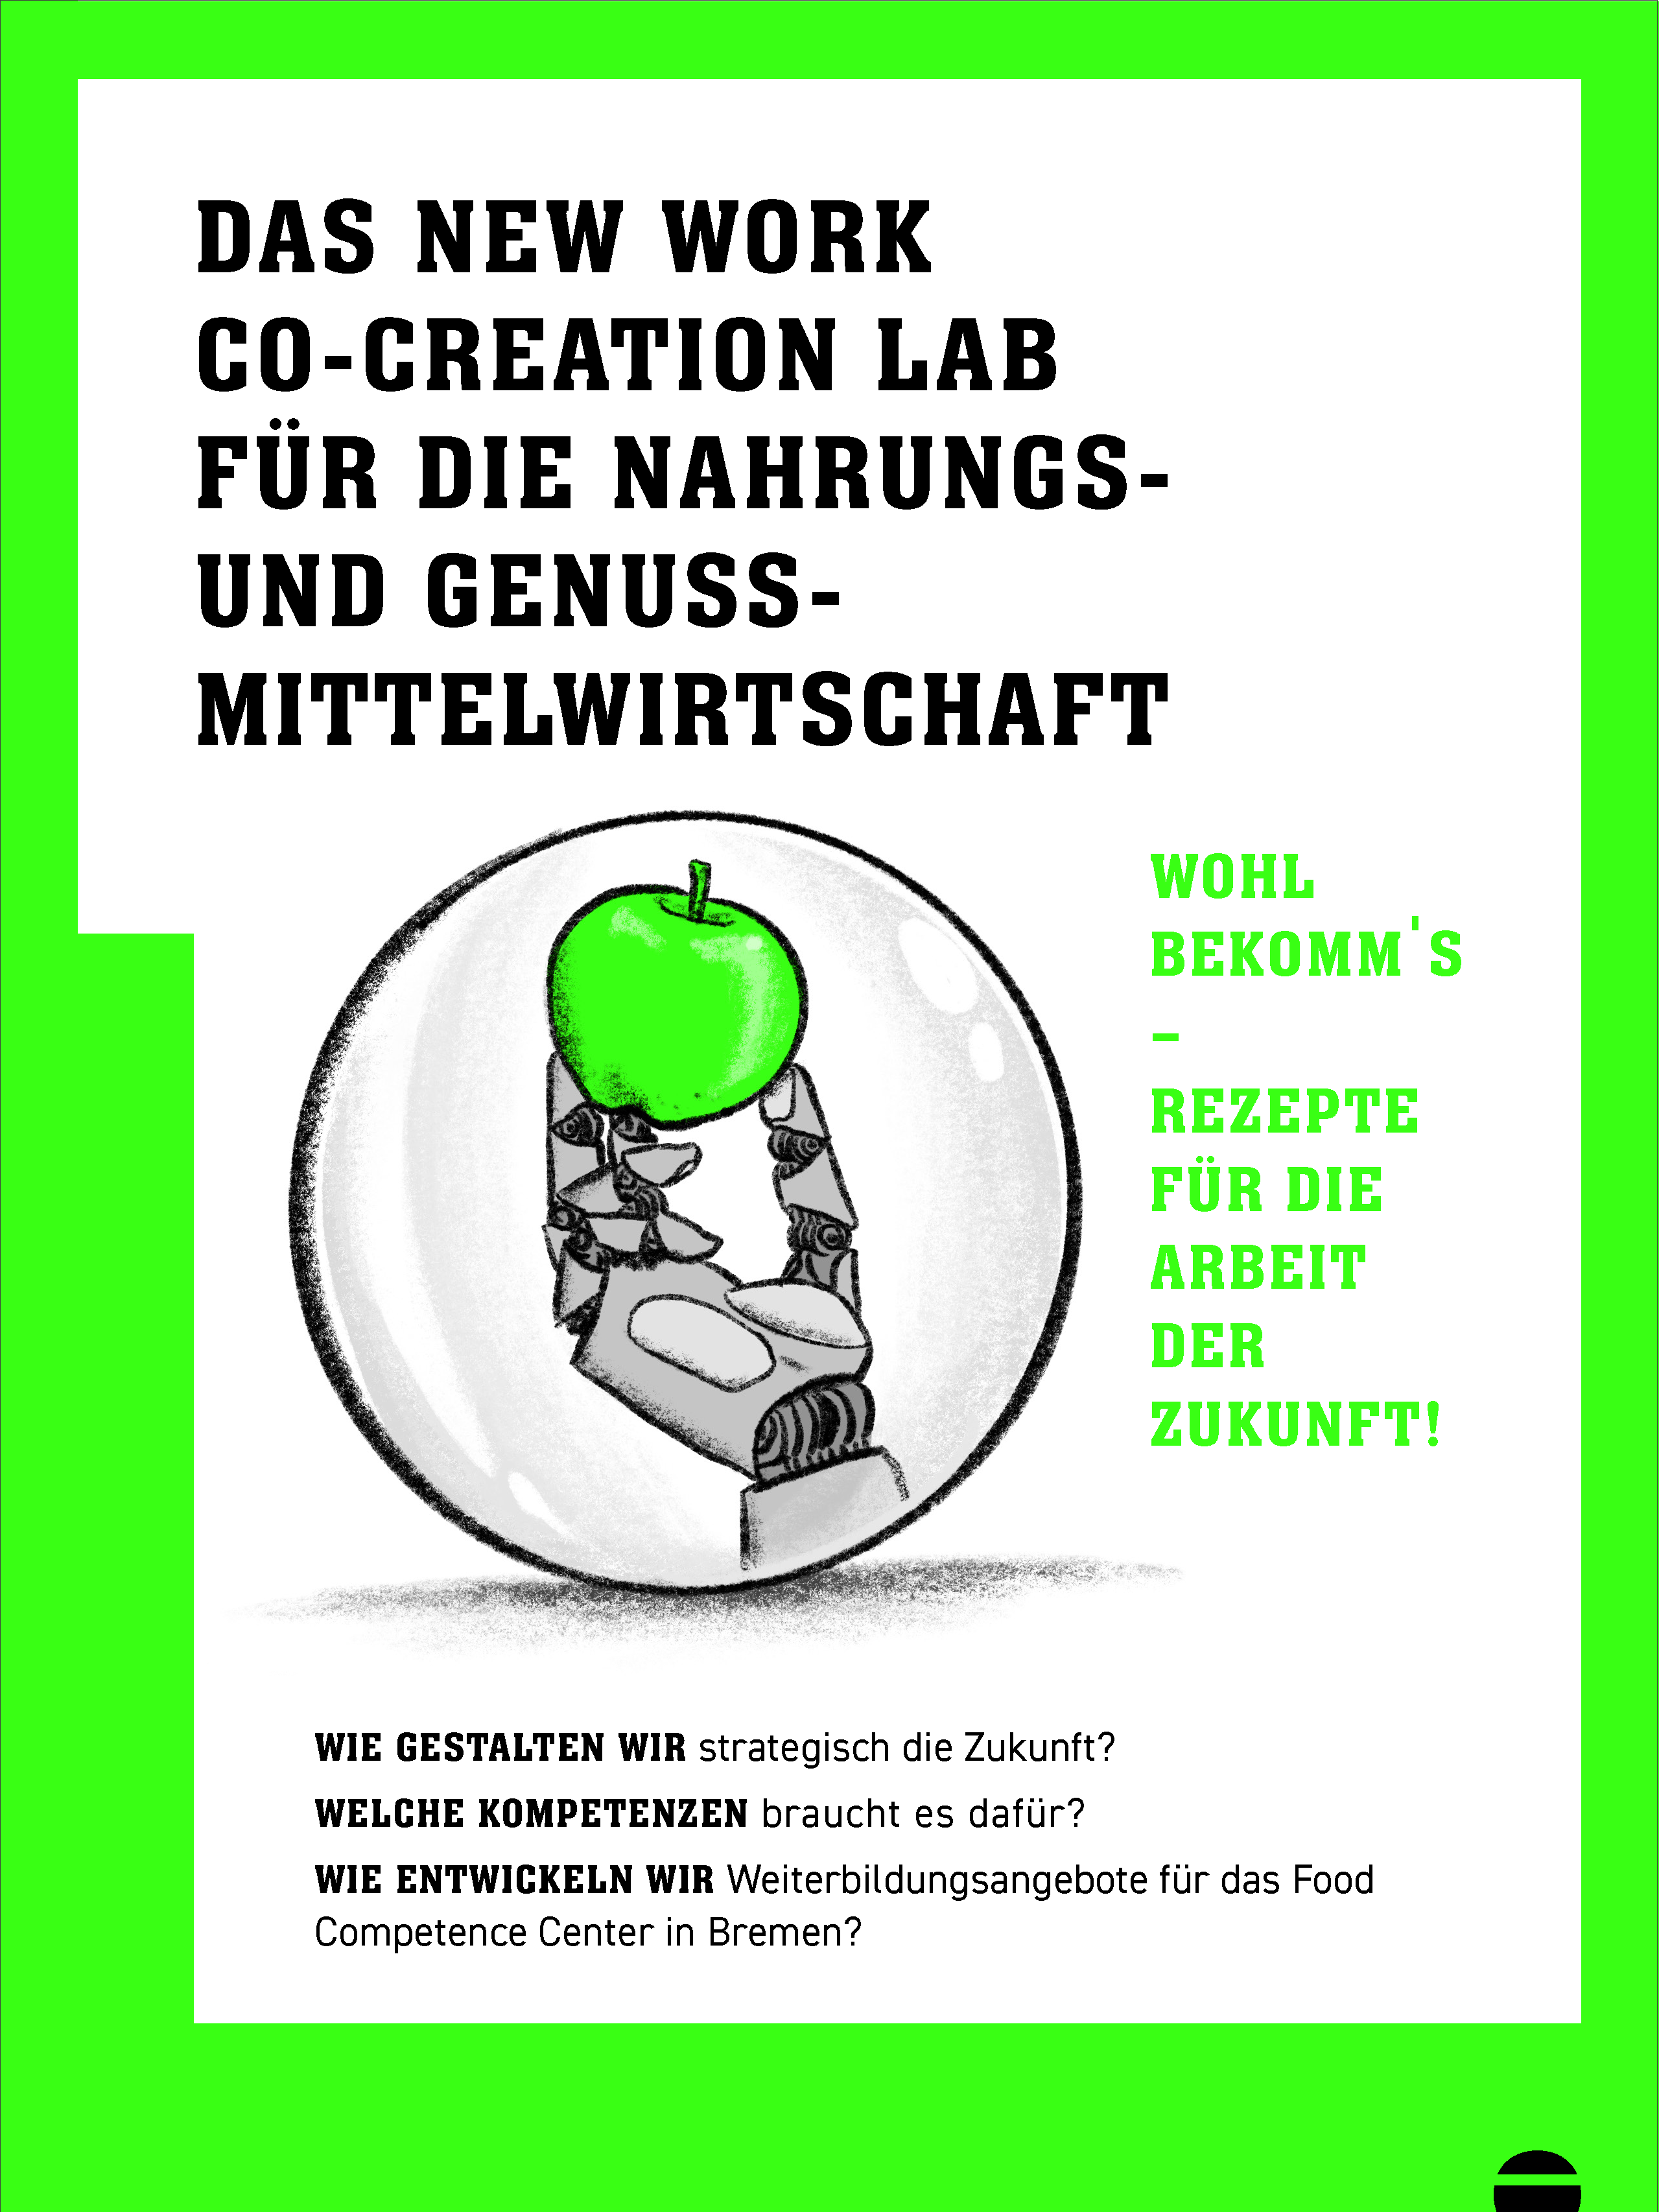 New Work Co-Creation Lab geht in die zweite Runde